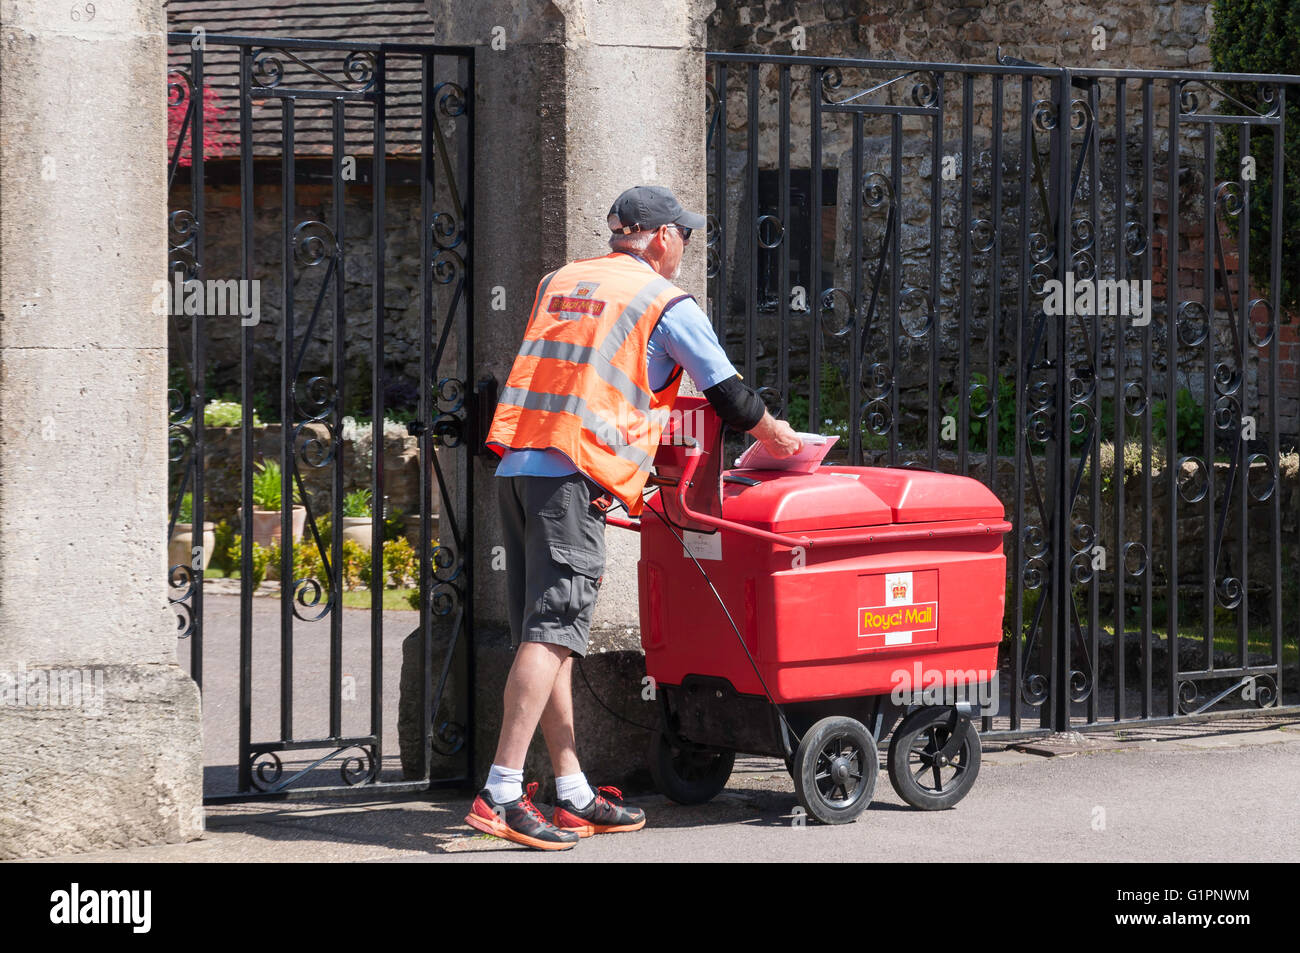 Royal Mail postman doing his rounds with postal cart, High Street, Thame, Oxfordshire, England, United Kingdom - Stock Image